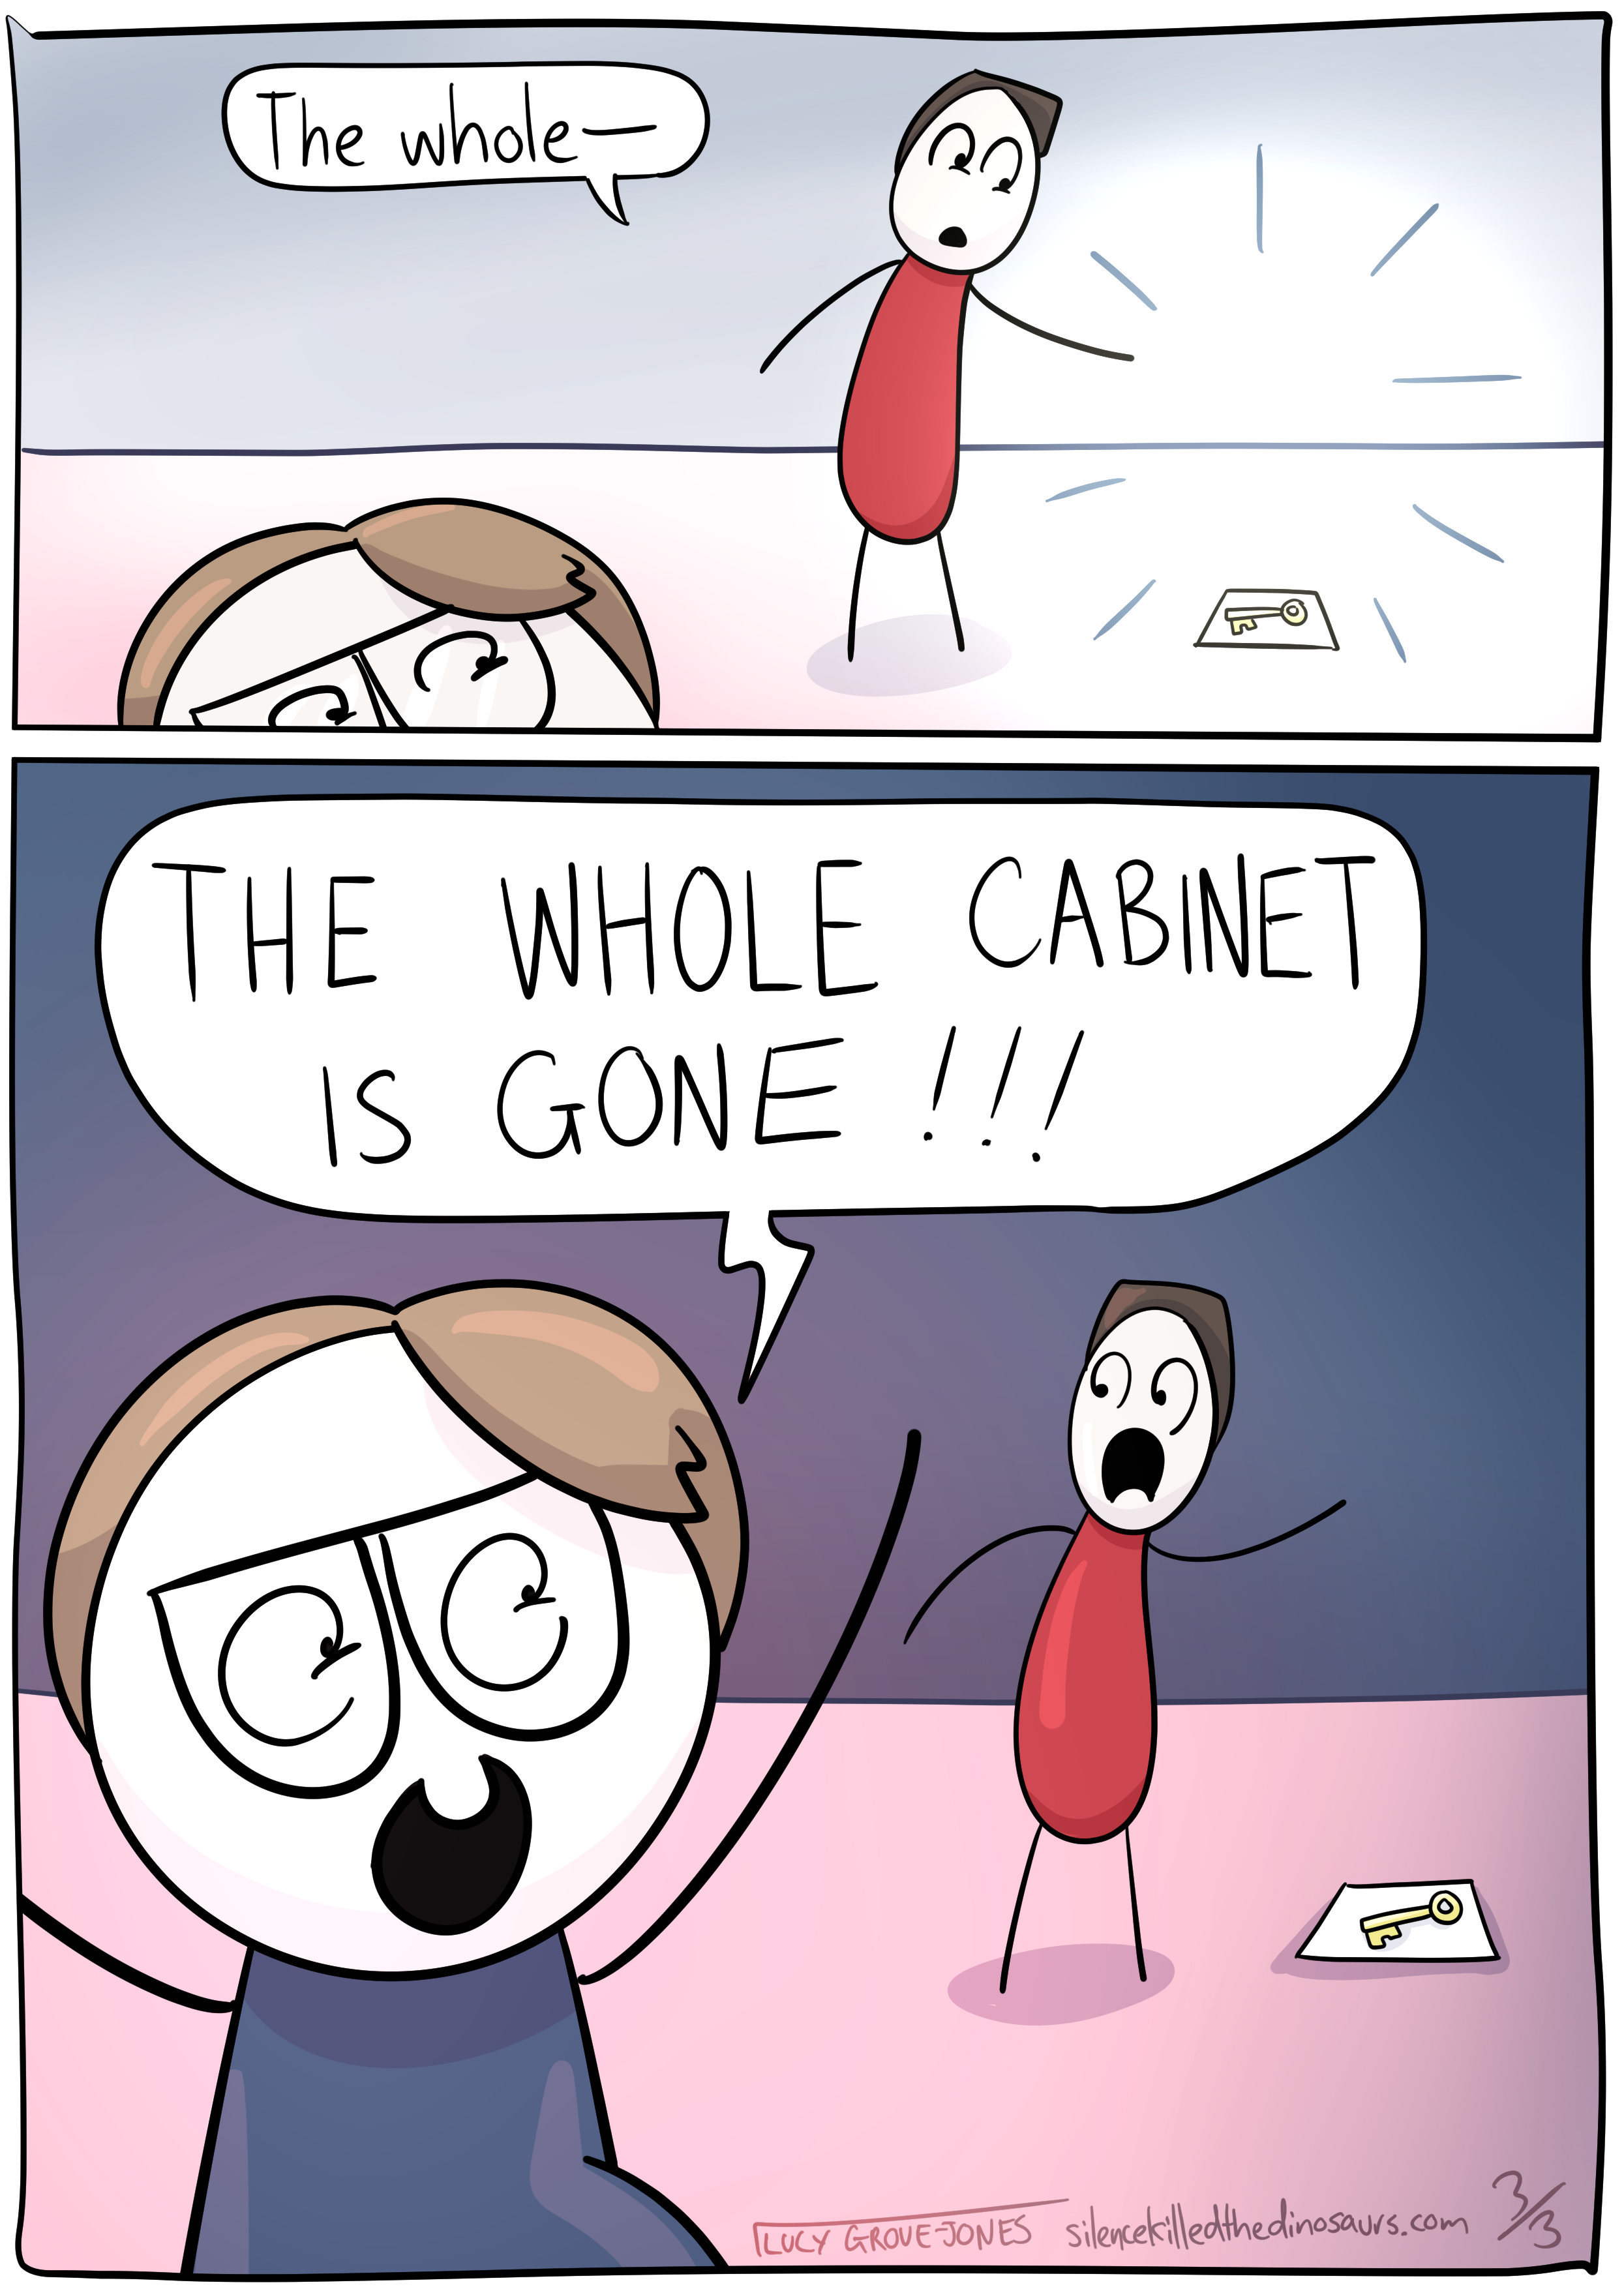 1 standard and 1 large panel. Panel 1: My partner says 'The whole--' as I rise higher from the bottom of the panel. Panel 2: I pop up looking very over-exciting yelling 'THE WHOLE CABINET IS GONE!!!' and my partner is rightly startled.